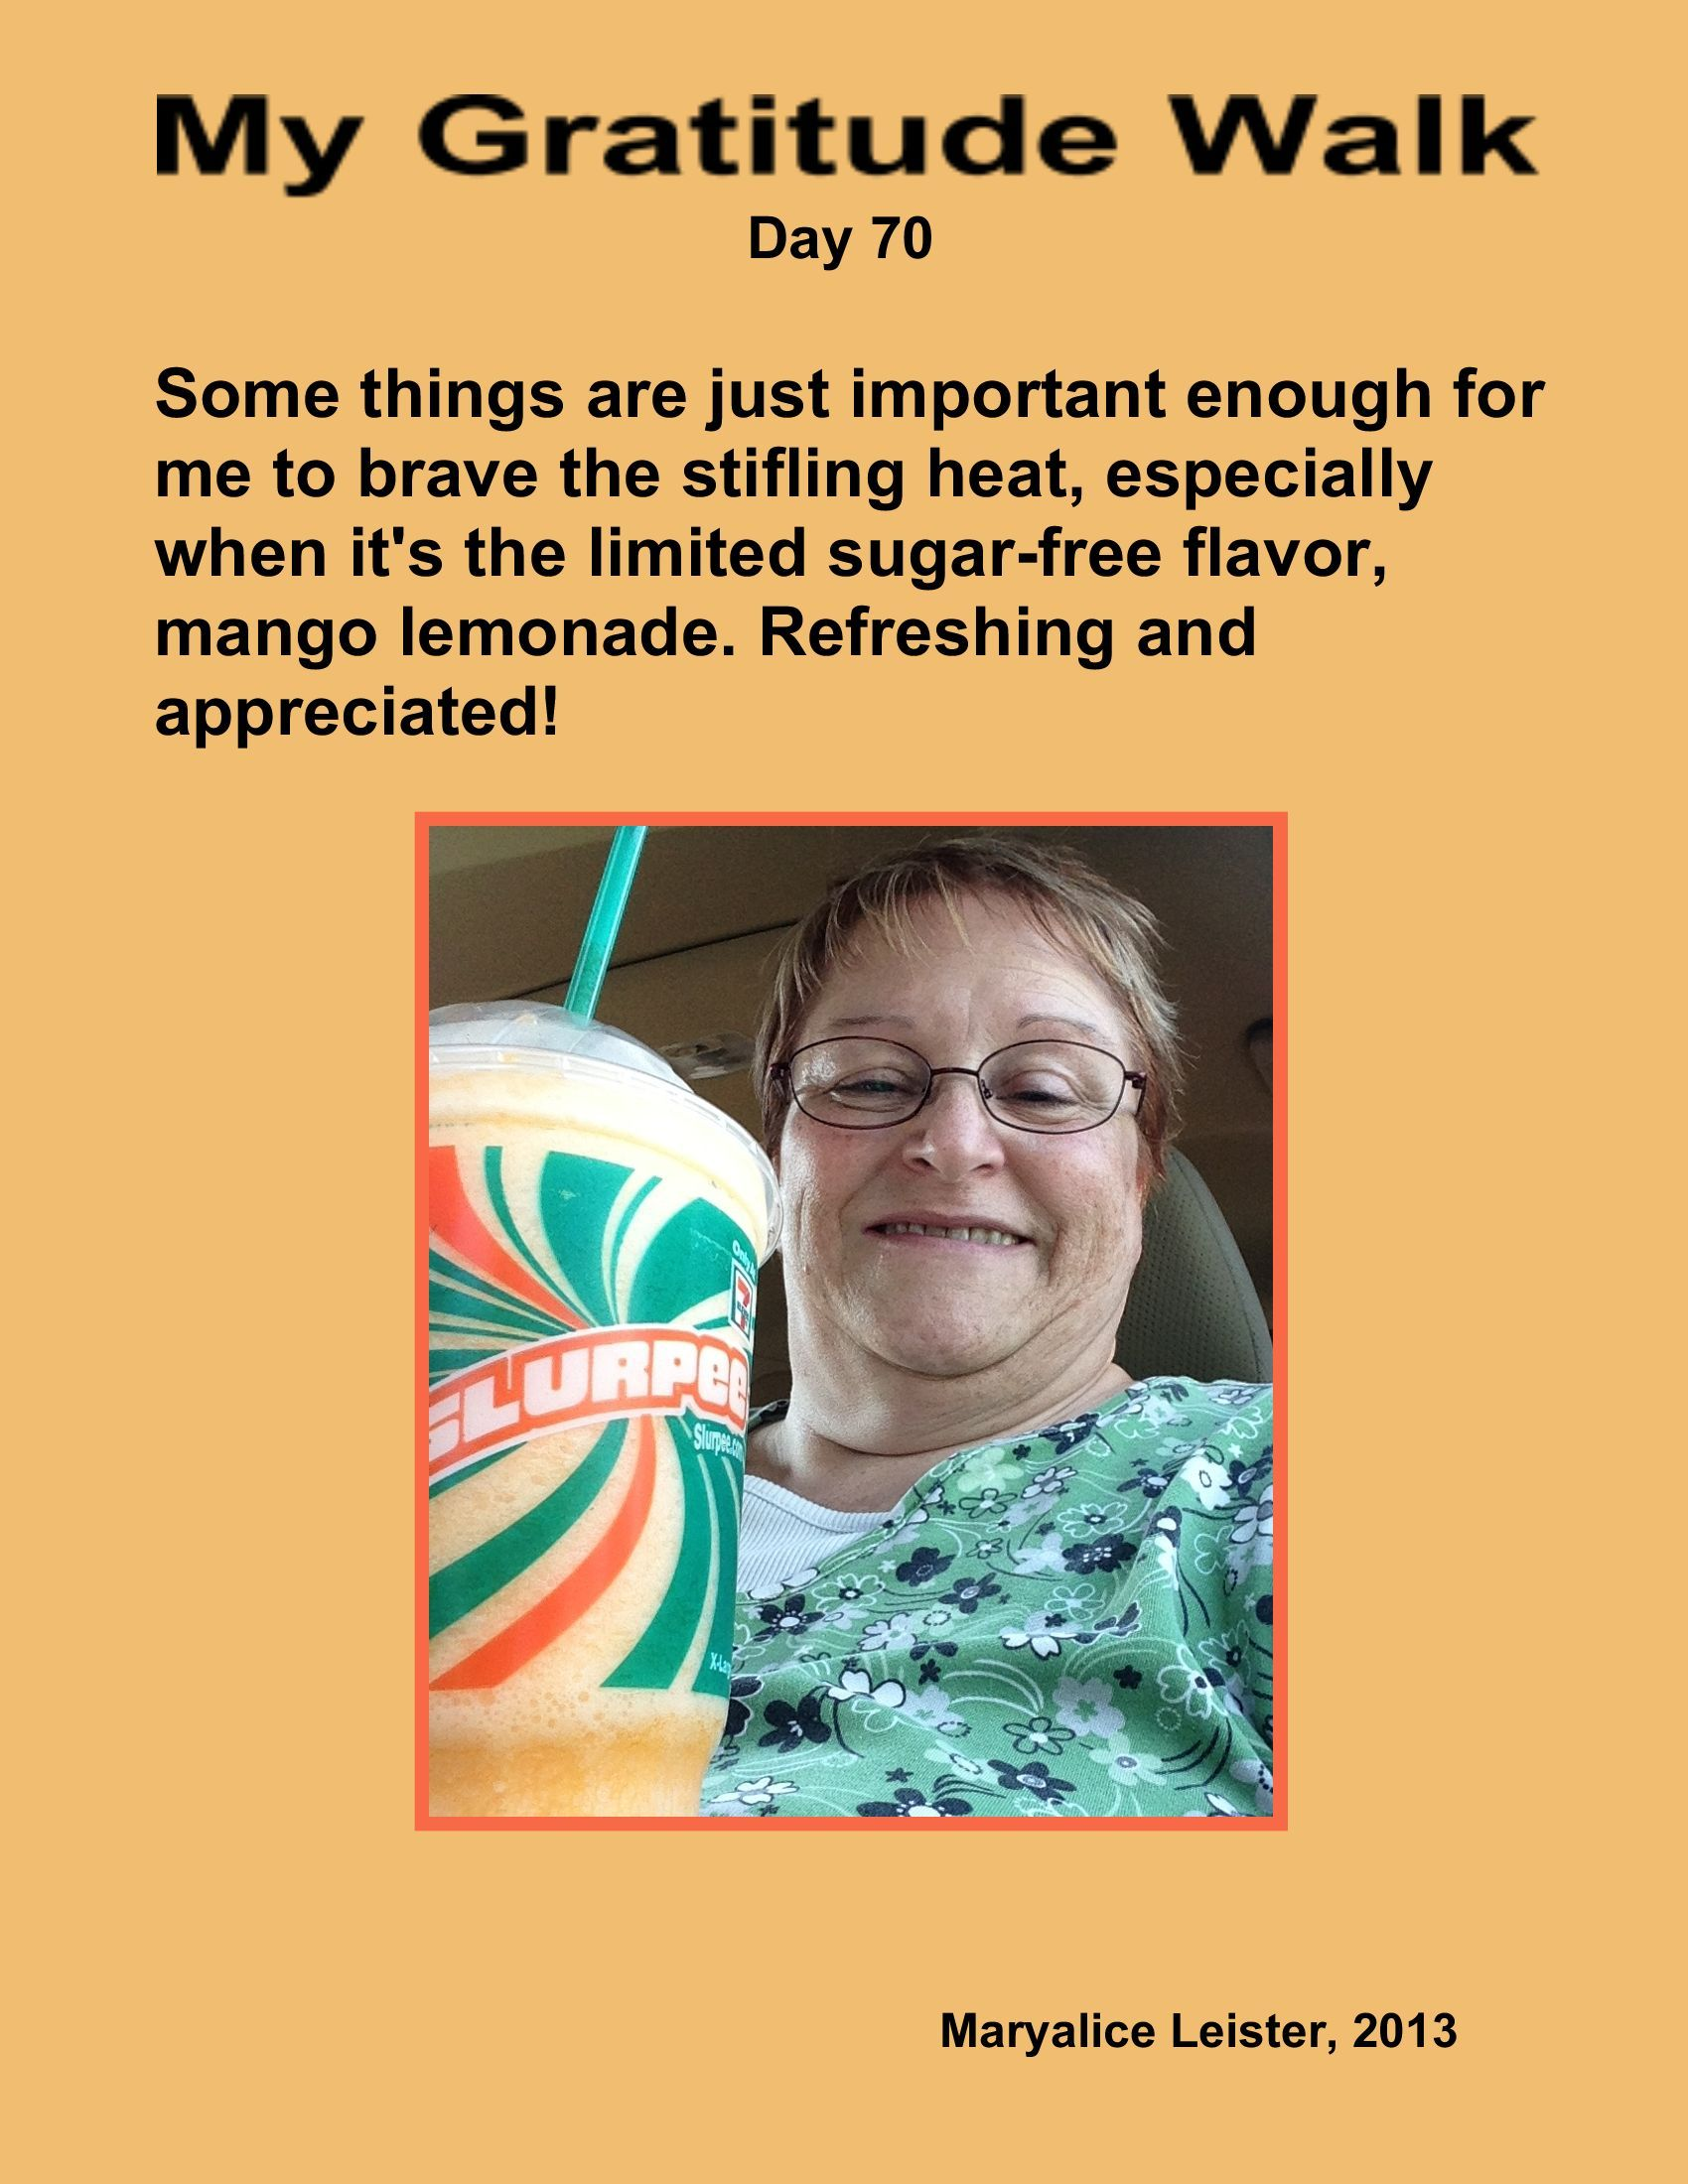 Simply delightful and refreshing! Thanks, 7-11!